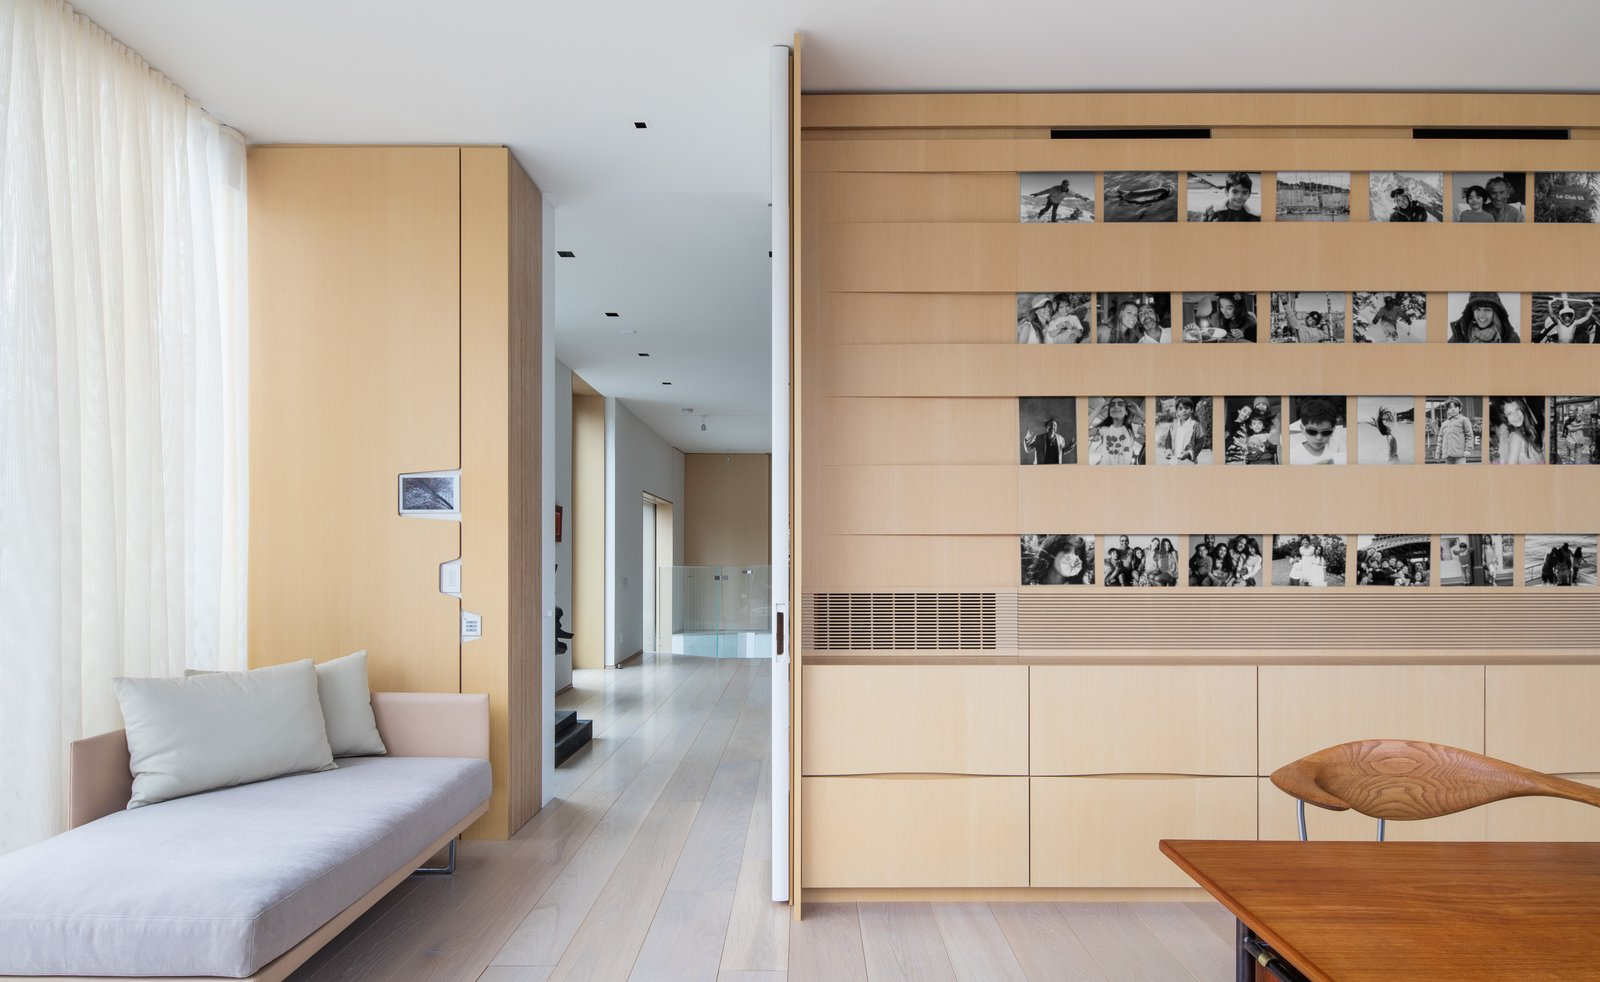 The husband's home office is furnished by a Toot lounge chair by Piero Lissoni for Cassina, a vintage Desk BO69 by Finn Juhl, and a Swivel chair by Hans Wegner. A custom picture rail, filled with family photos, is made of bands of wood that keep contents in place.  Photo 11 of 15 in What's the Twist Behind This Home's Sinuous Staircase? Ordinary Plywood